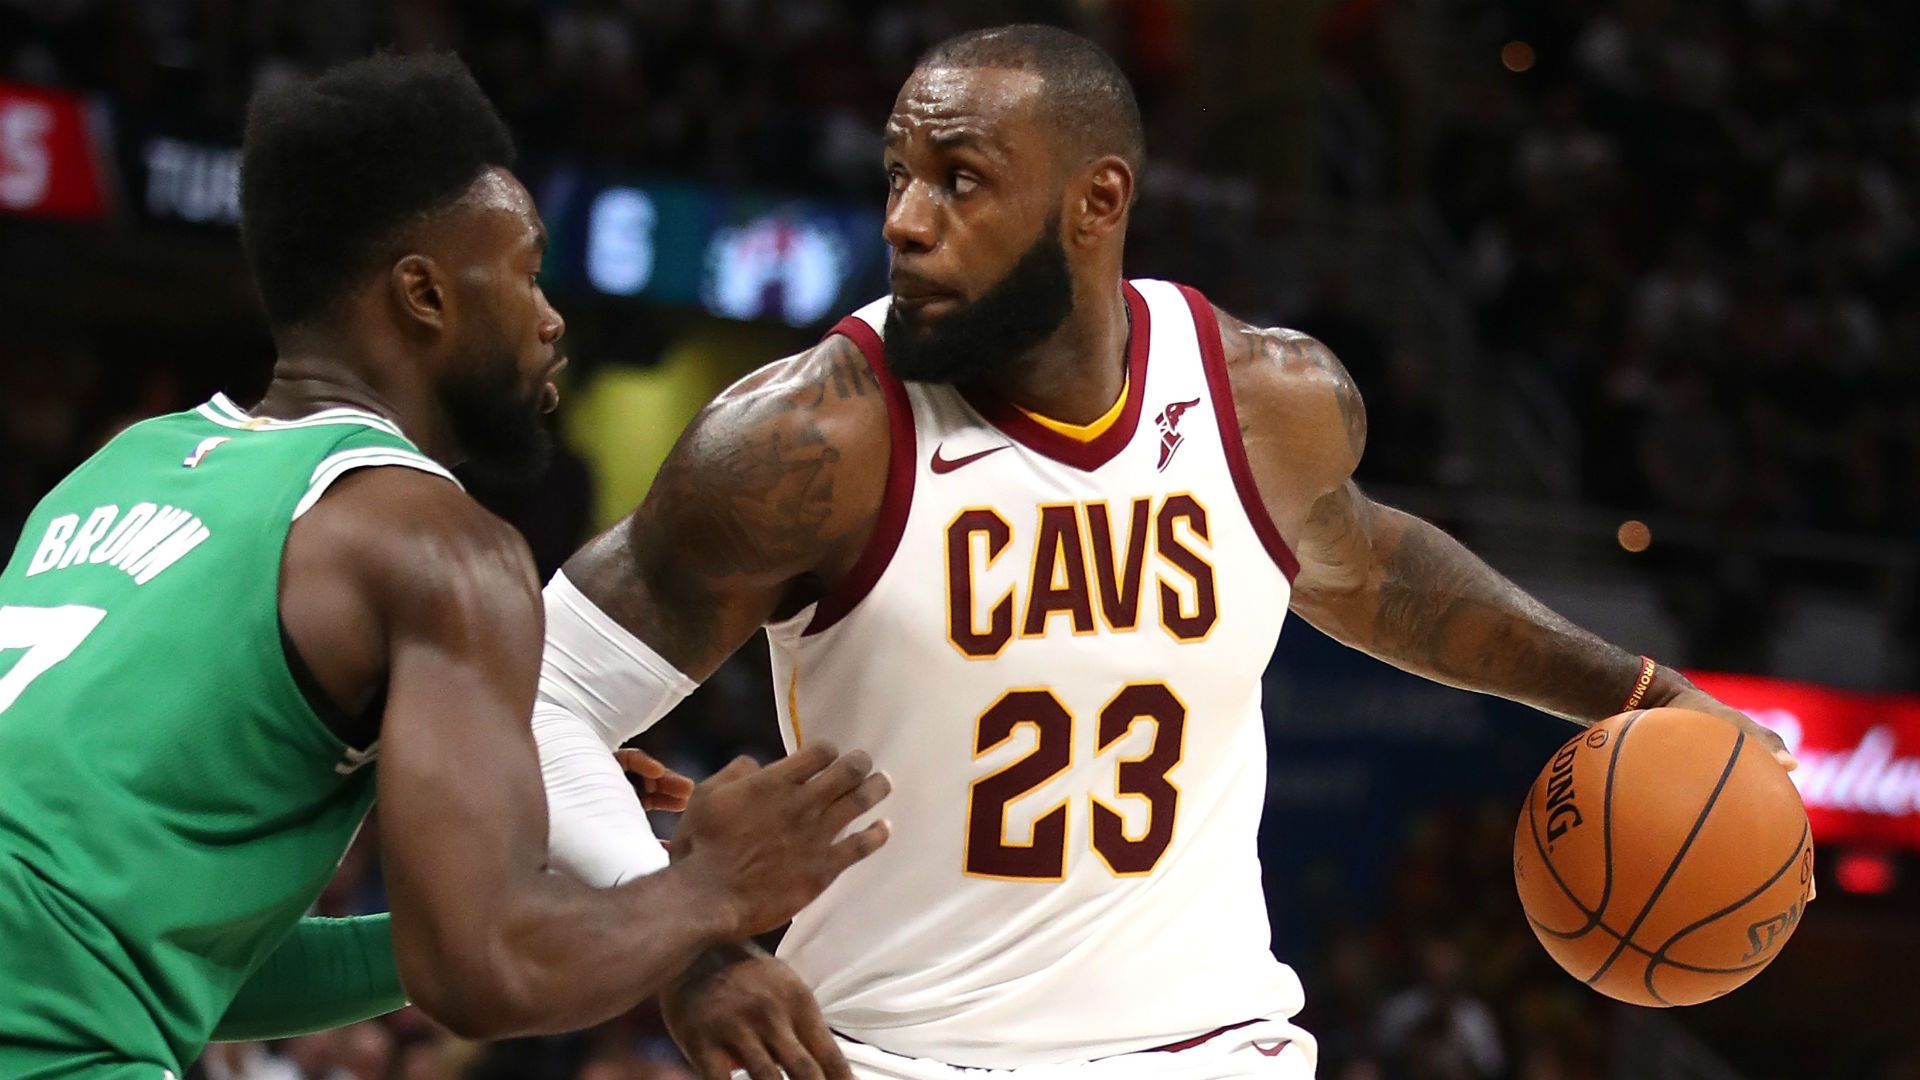 Lakers Make Questionable Moves After Landing LeBron